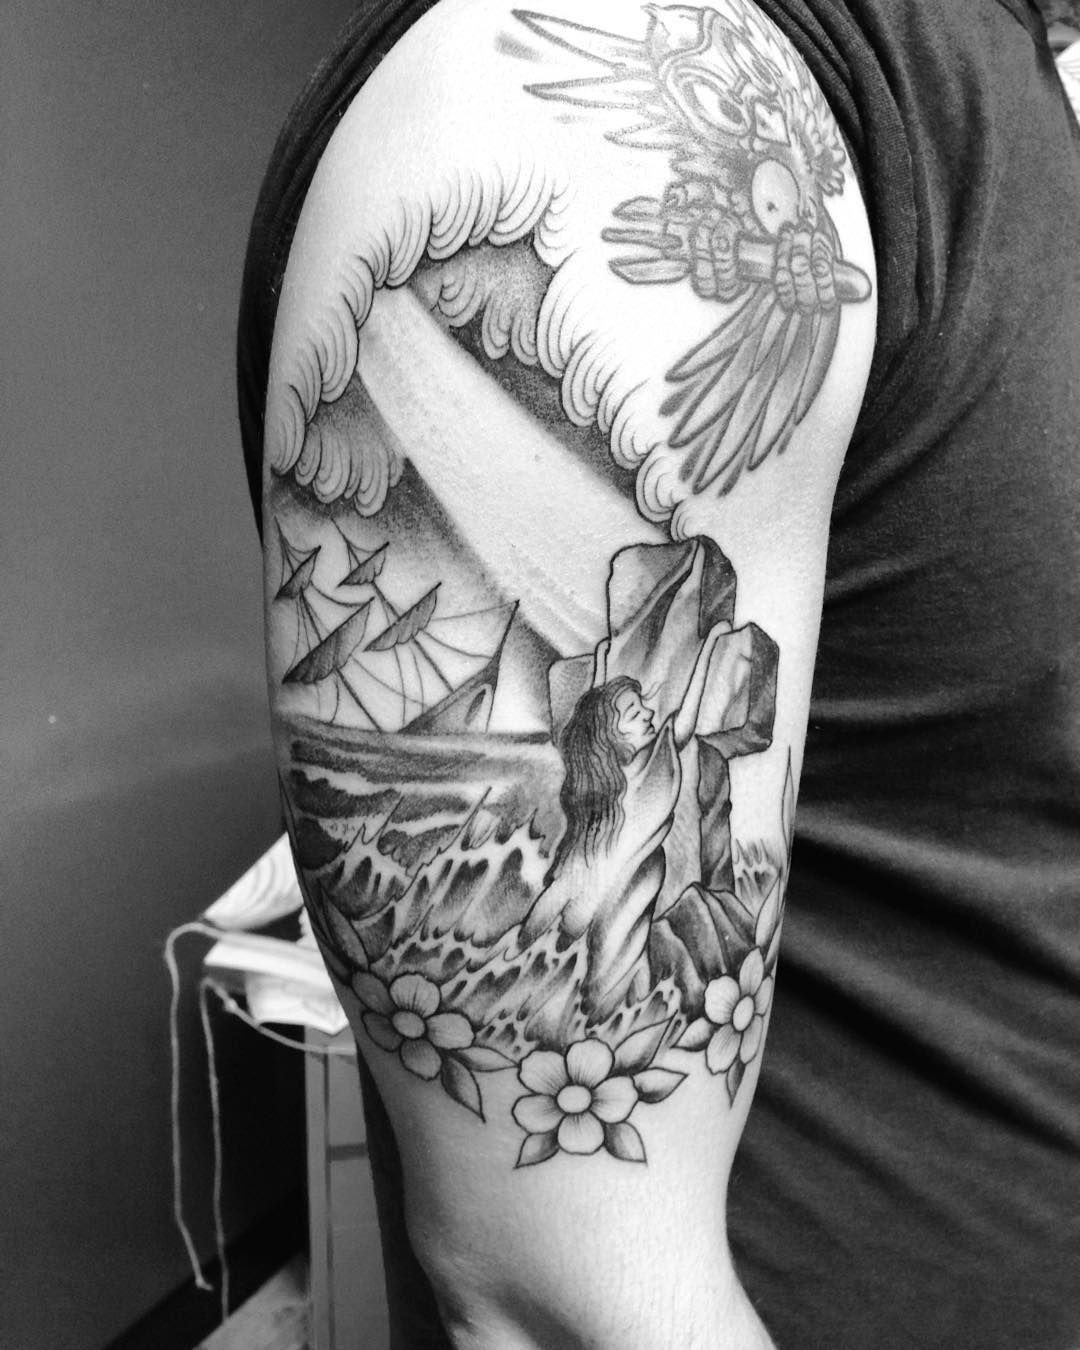 Pin by Ashley Ballard on tattoos   Tattoos, Rock of ages, Ink